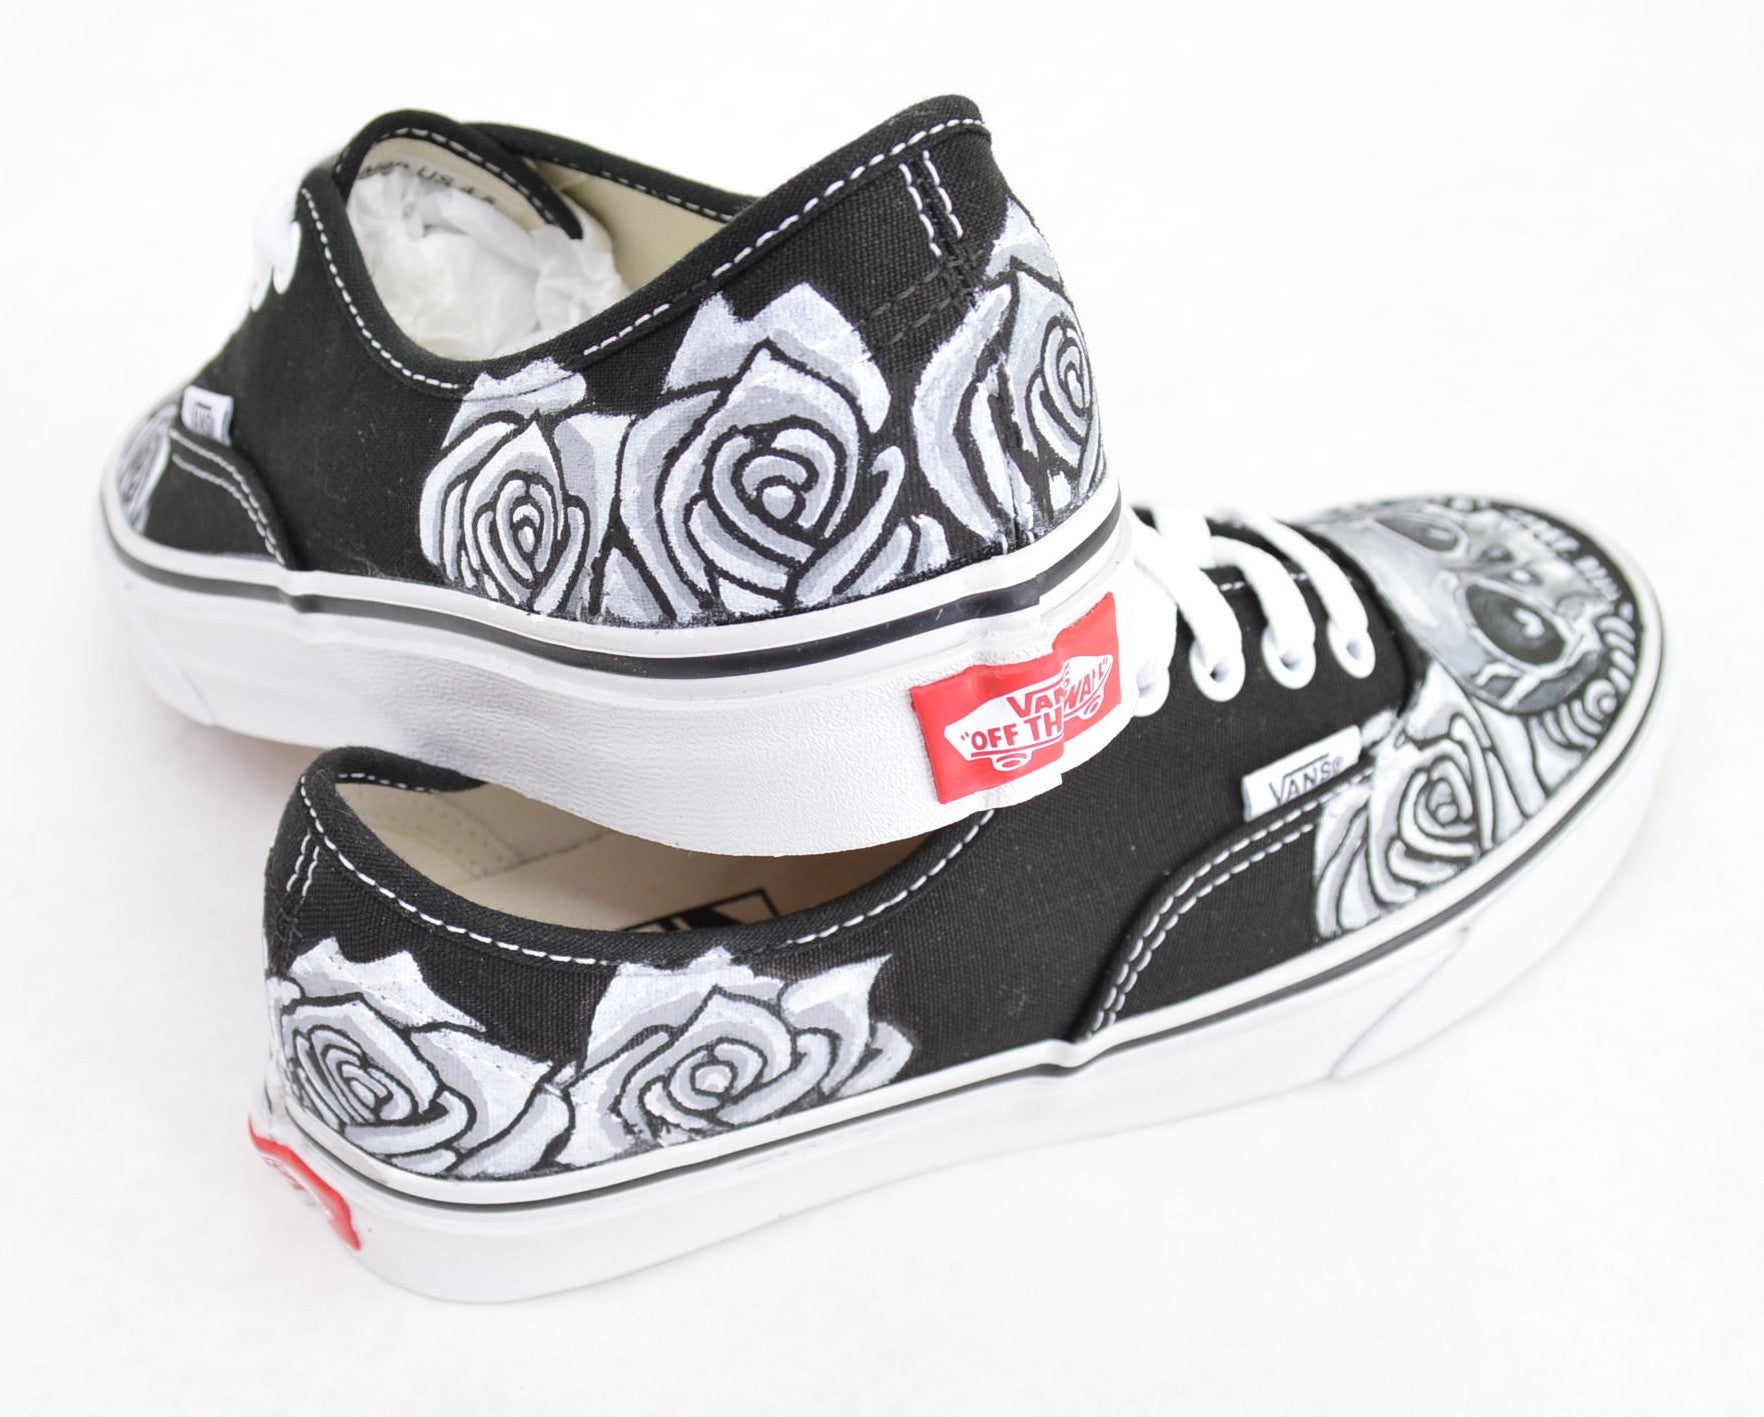 Custom Vans Painted Shoes Hand Trainers